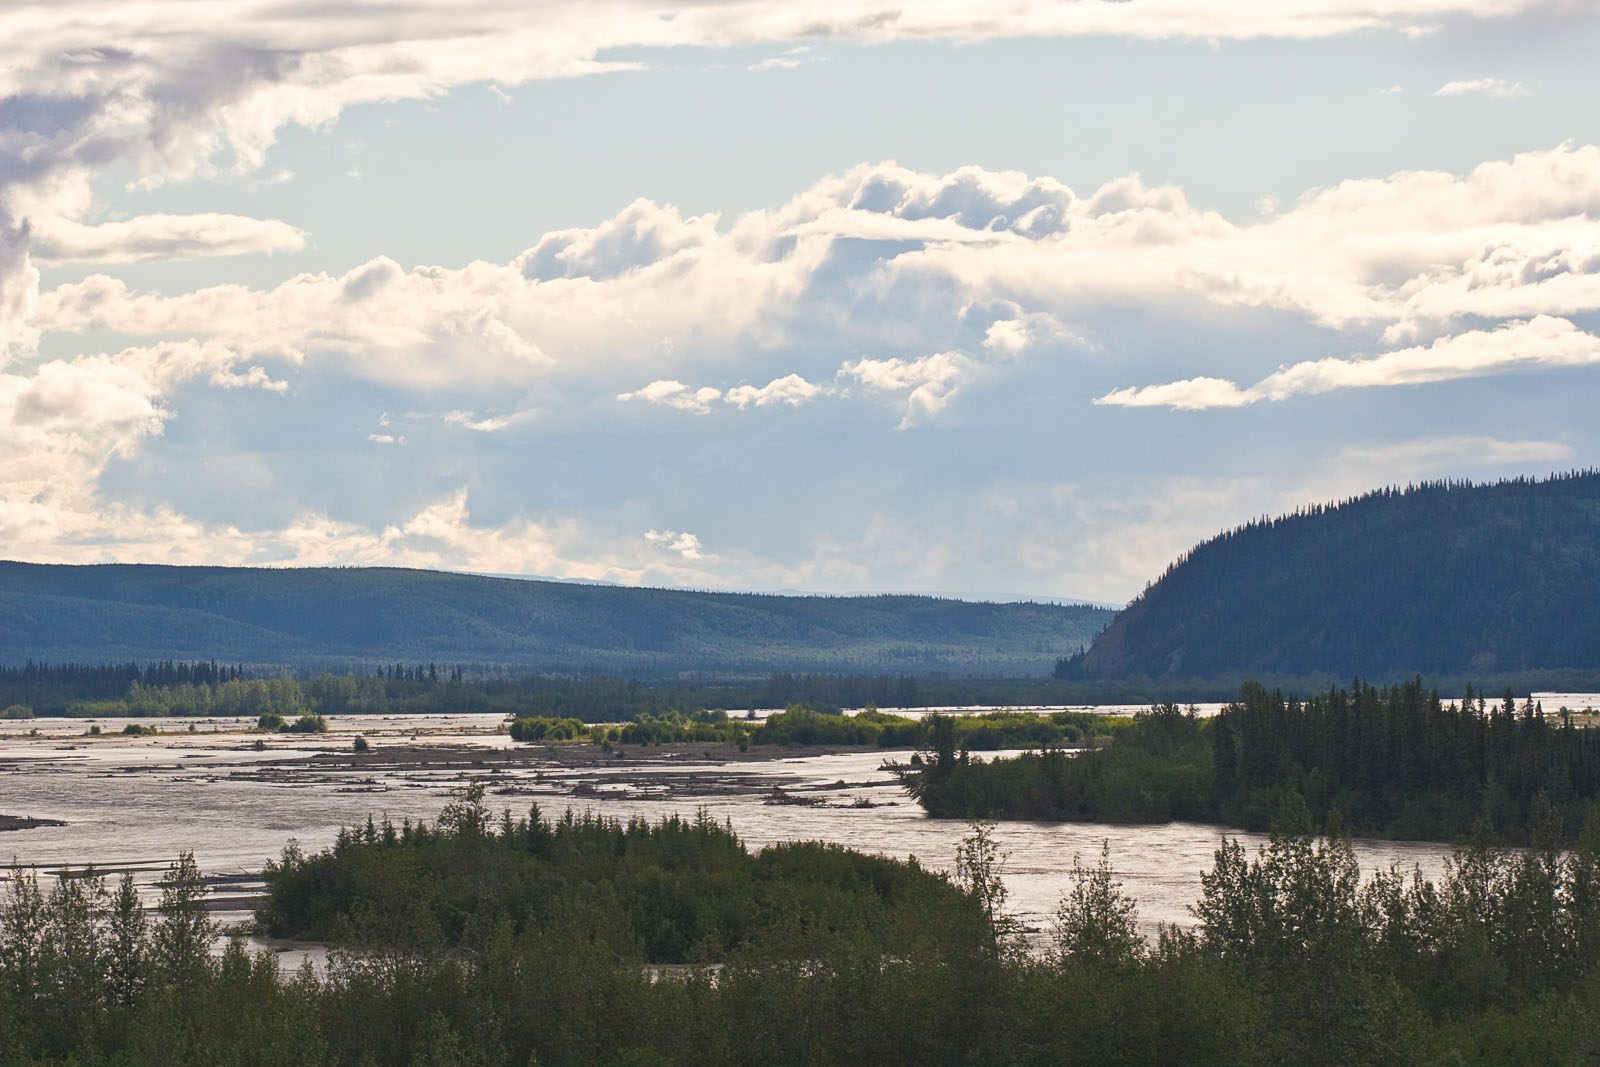 From the Tanana River in Alaska.